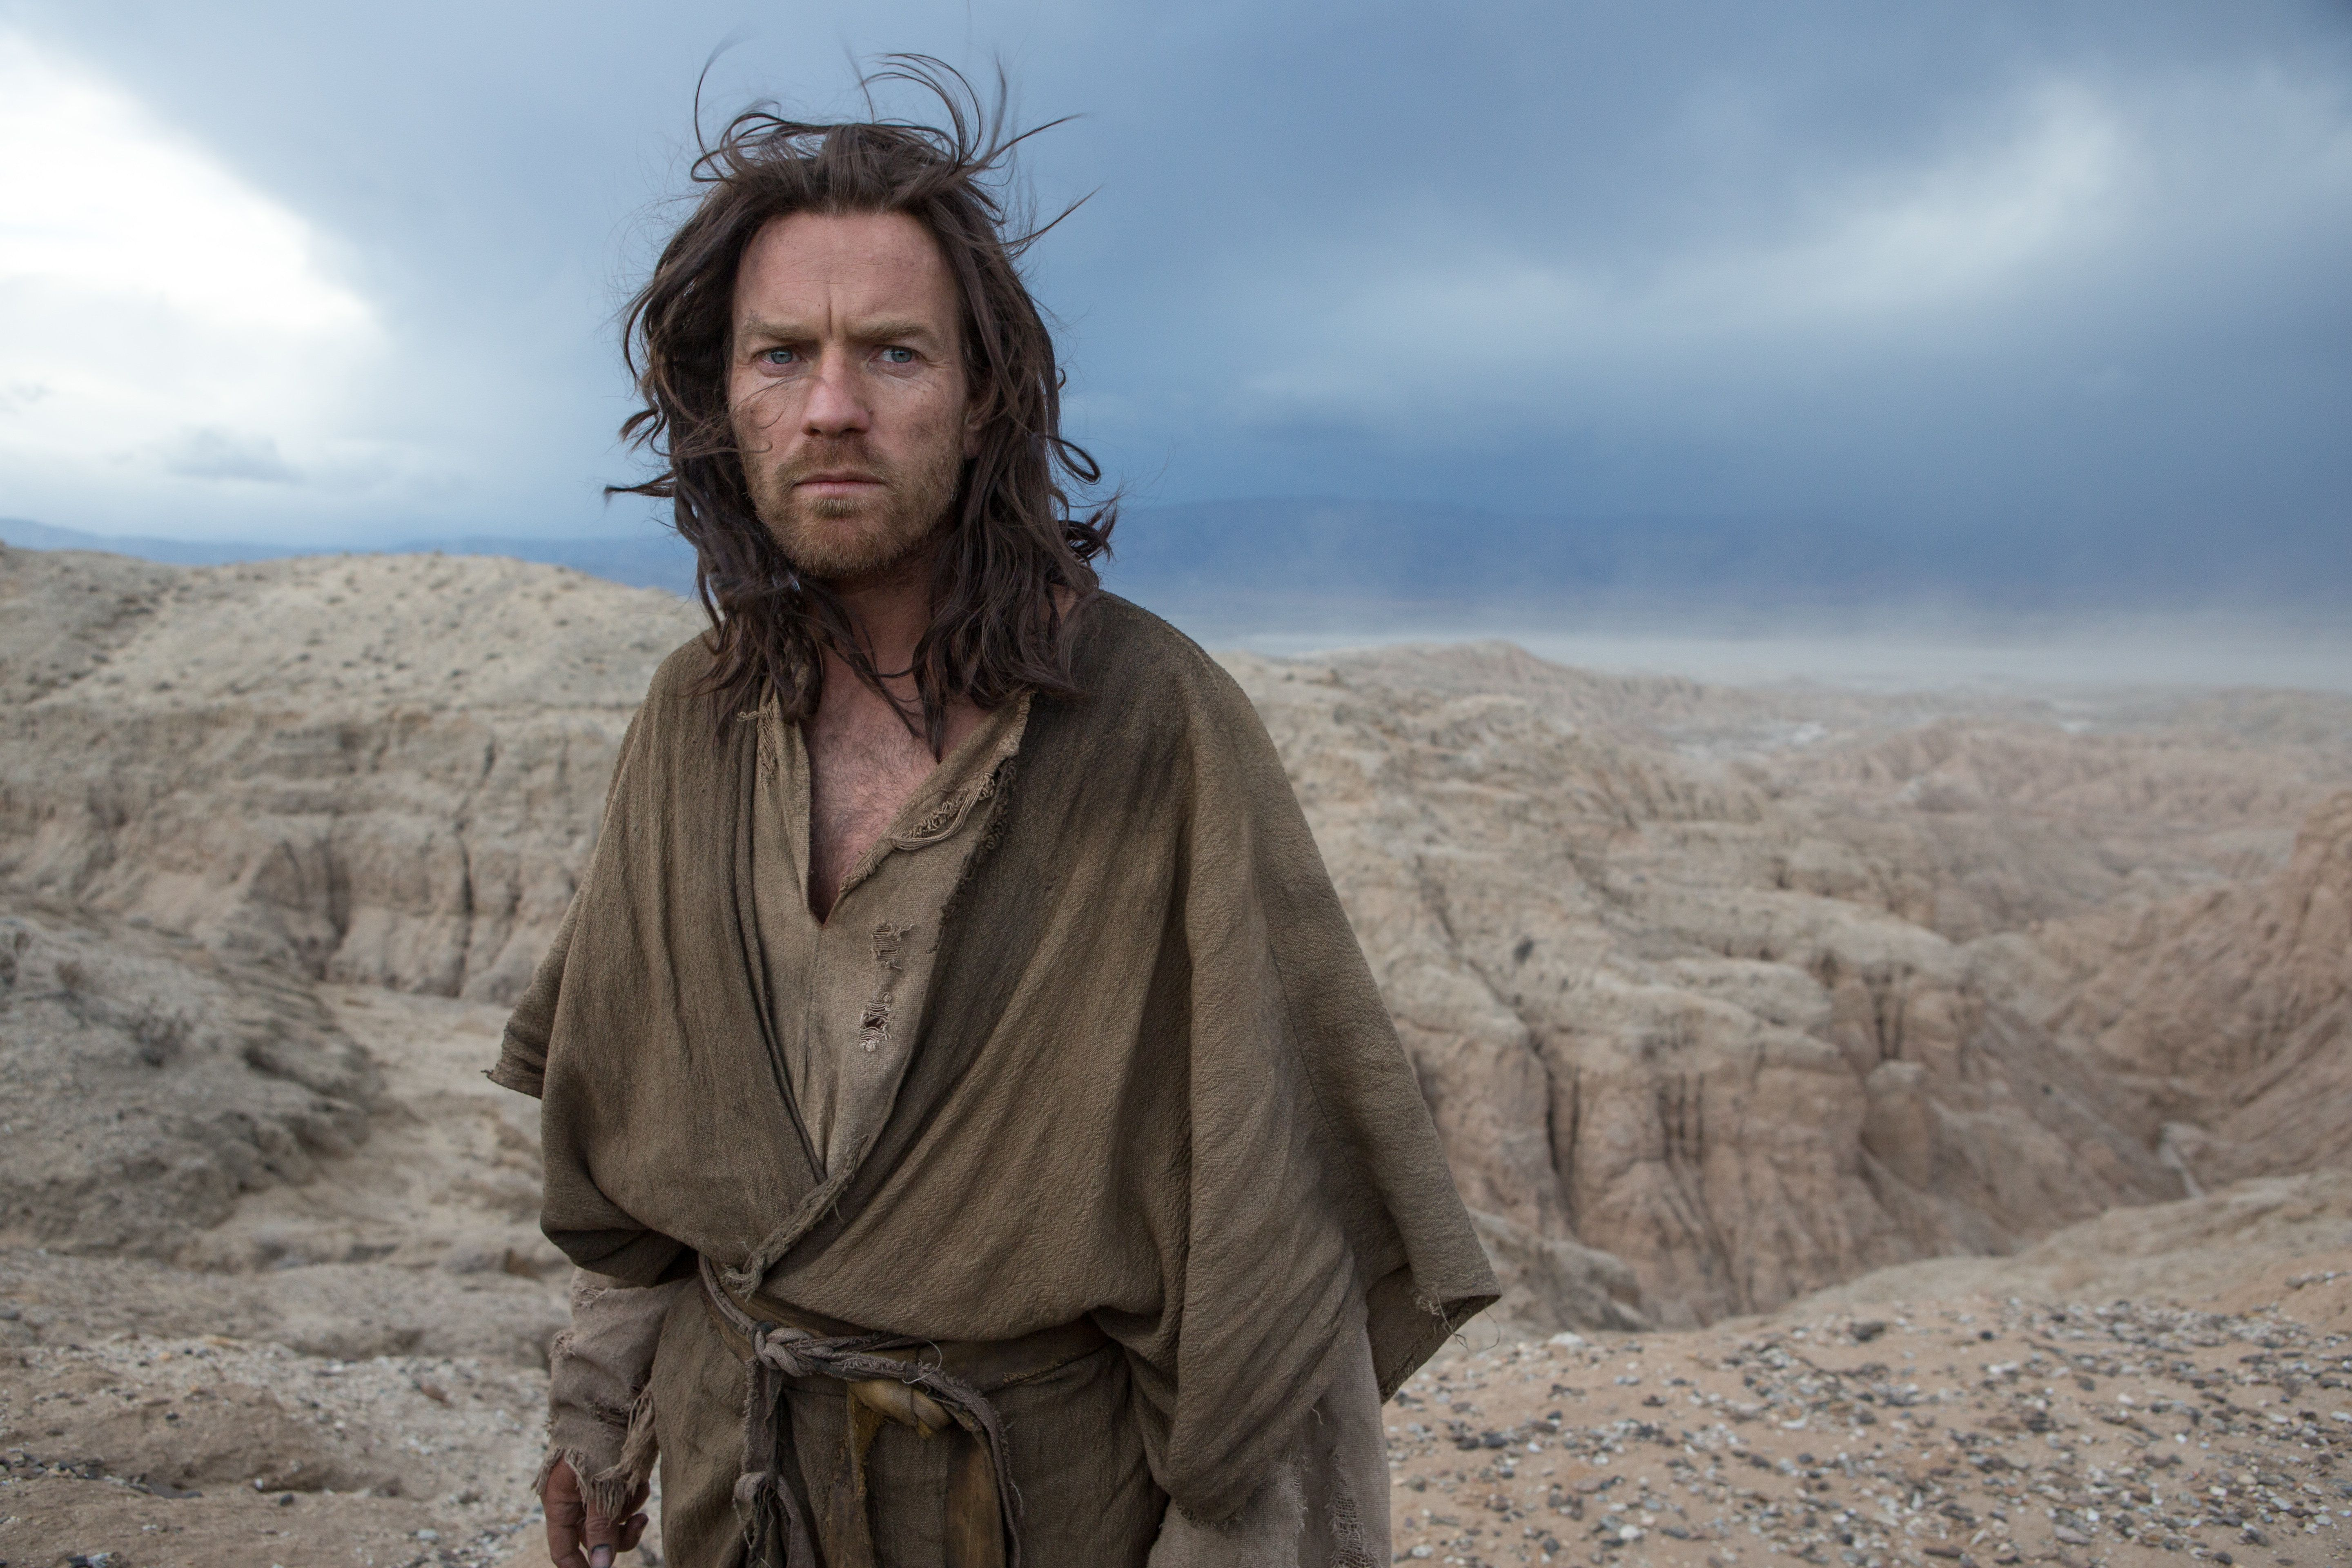 LDD_03227 Ewan McGregor stars as 'Jesus' in the imagined chapter of Jesus' forty days of fasting and praying, LAST DAYS IN THE DESERT, a Broad Green Pictures release.Credit: Gilles Mingasson / Broad Green Pictures